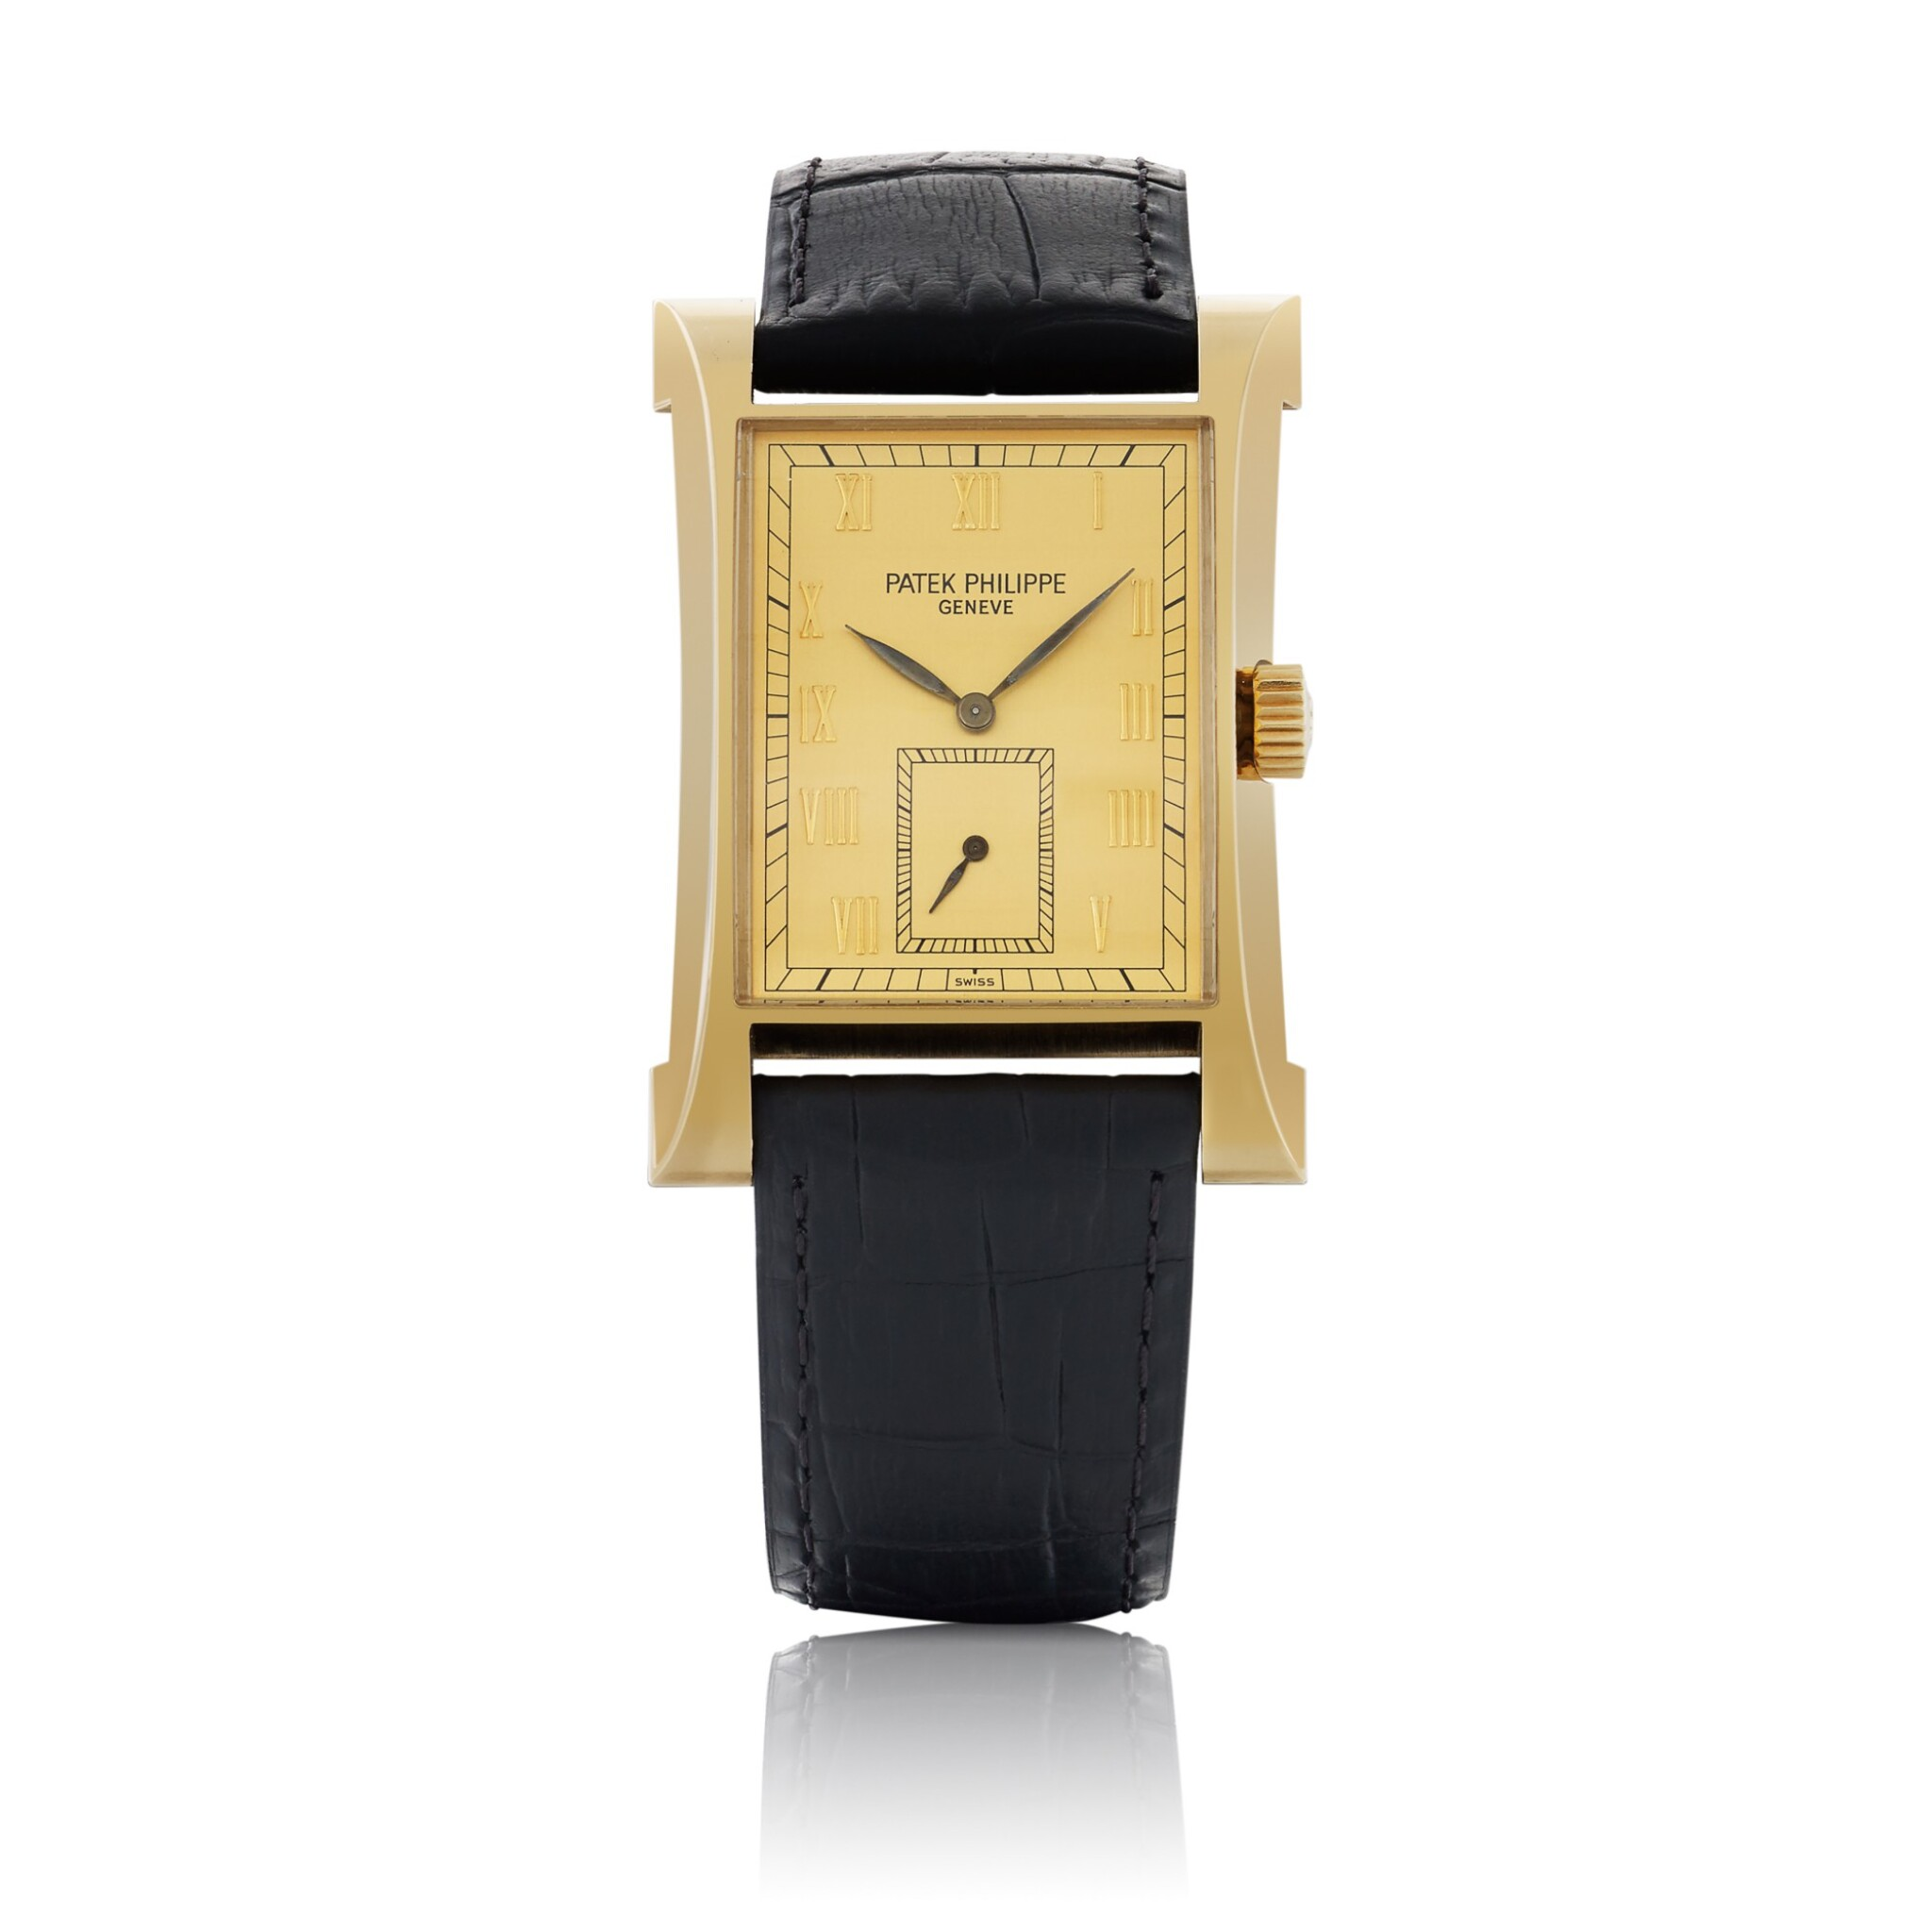 View full screen - View 1 of Lot 317. PAGODA, REF 5500 YELLOW GOLD WRISTWATCH MADE TO COMMEMORATE THE OPENING OF THE NEW WATCHMAKING CENTER OF PATEK PHILIPPE IN GENEVA CIRCA 1997.